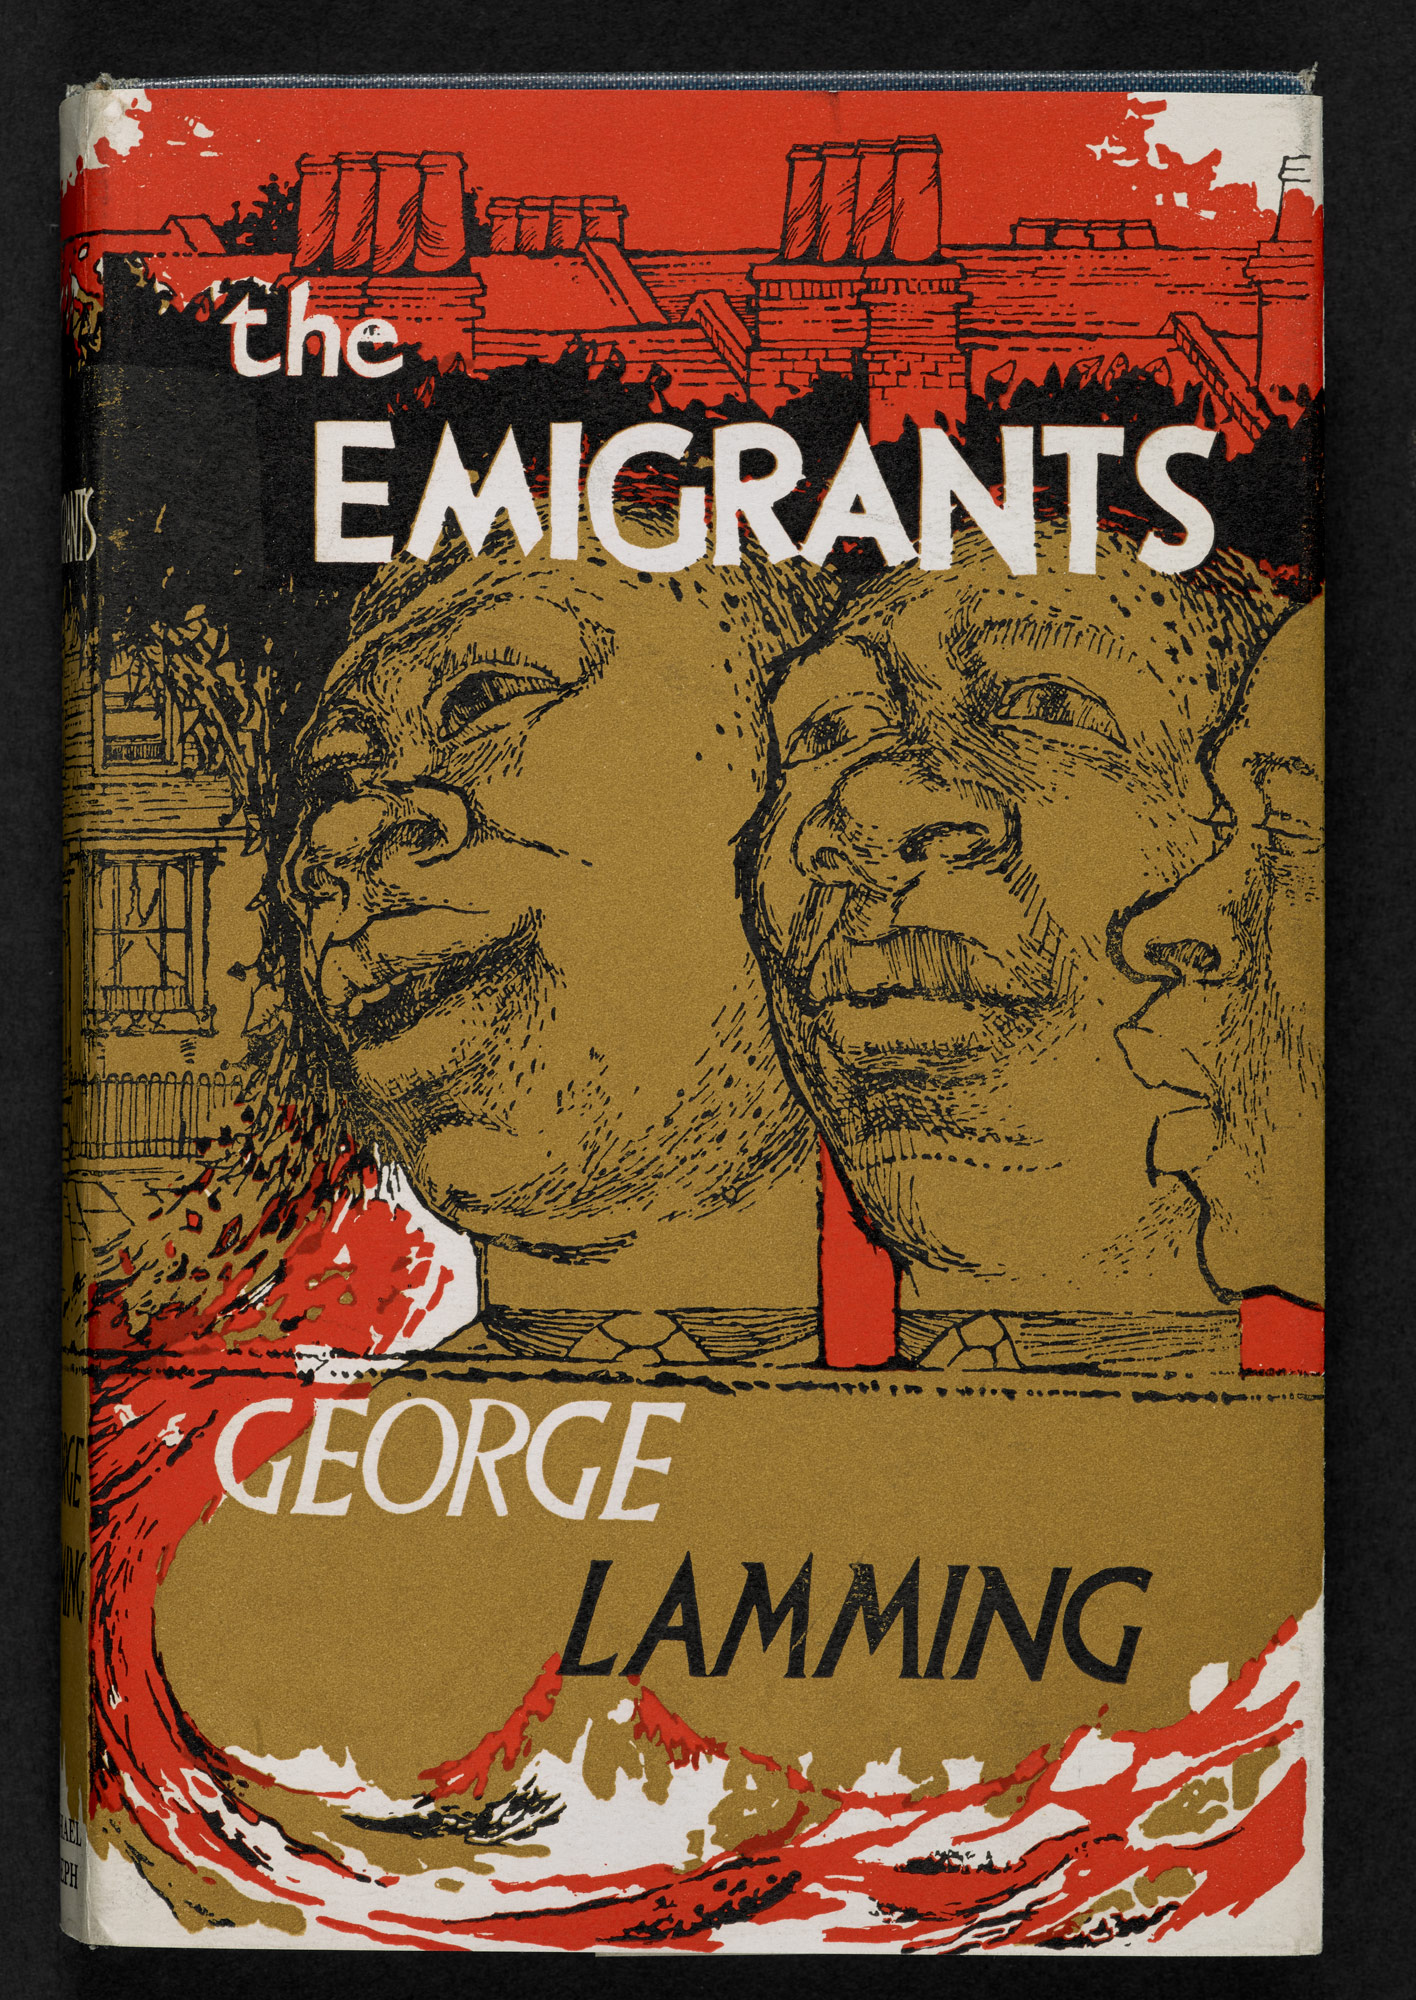 Dust jacket of The Emigrants by George Lamming